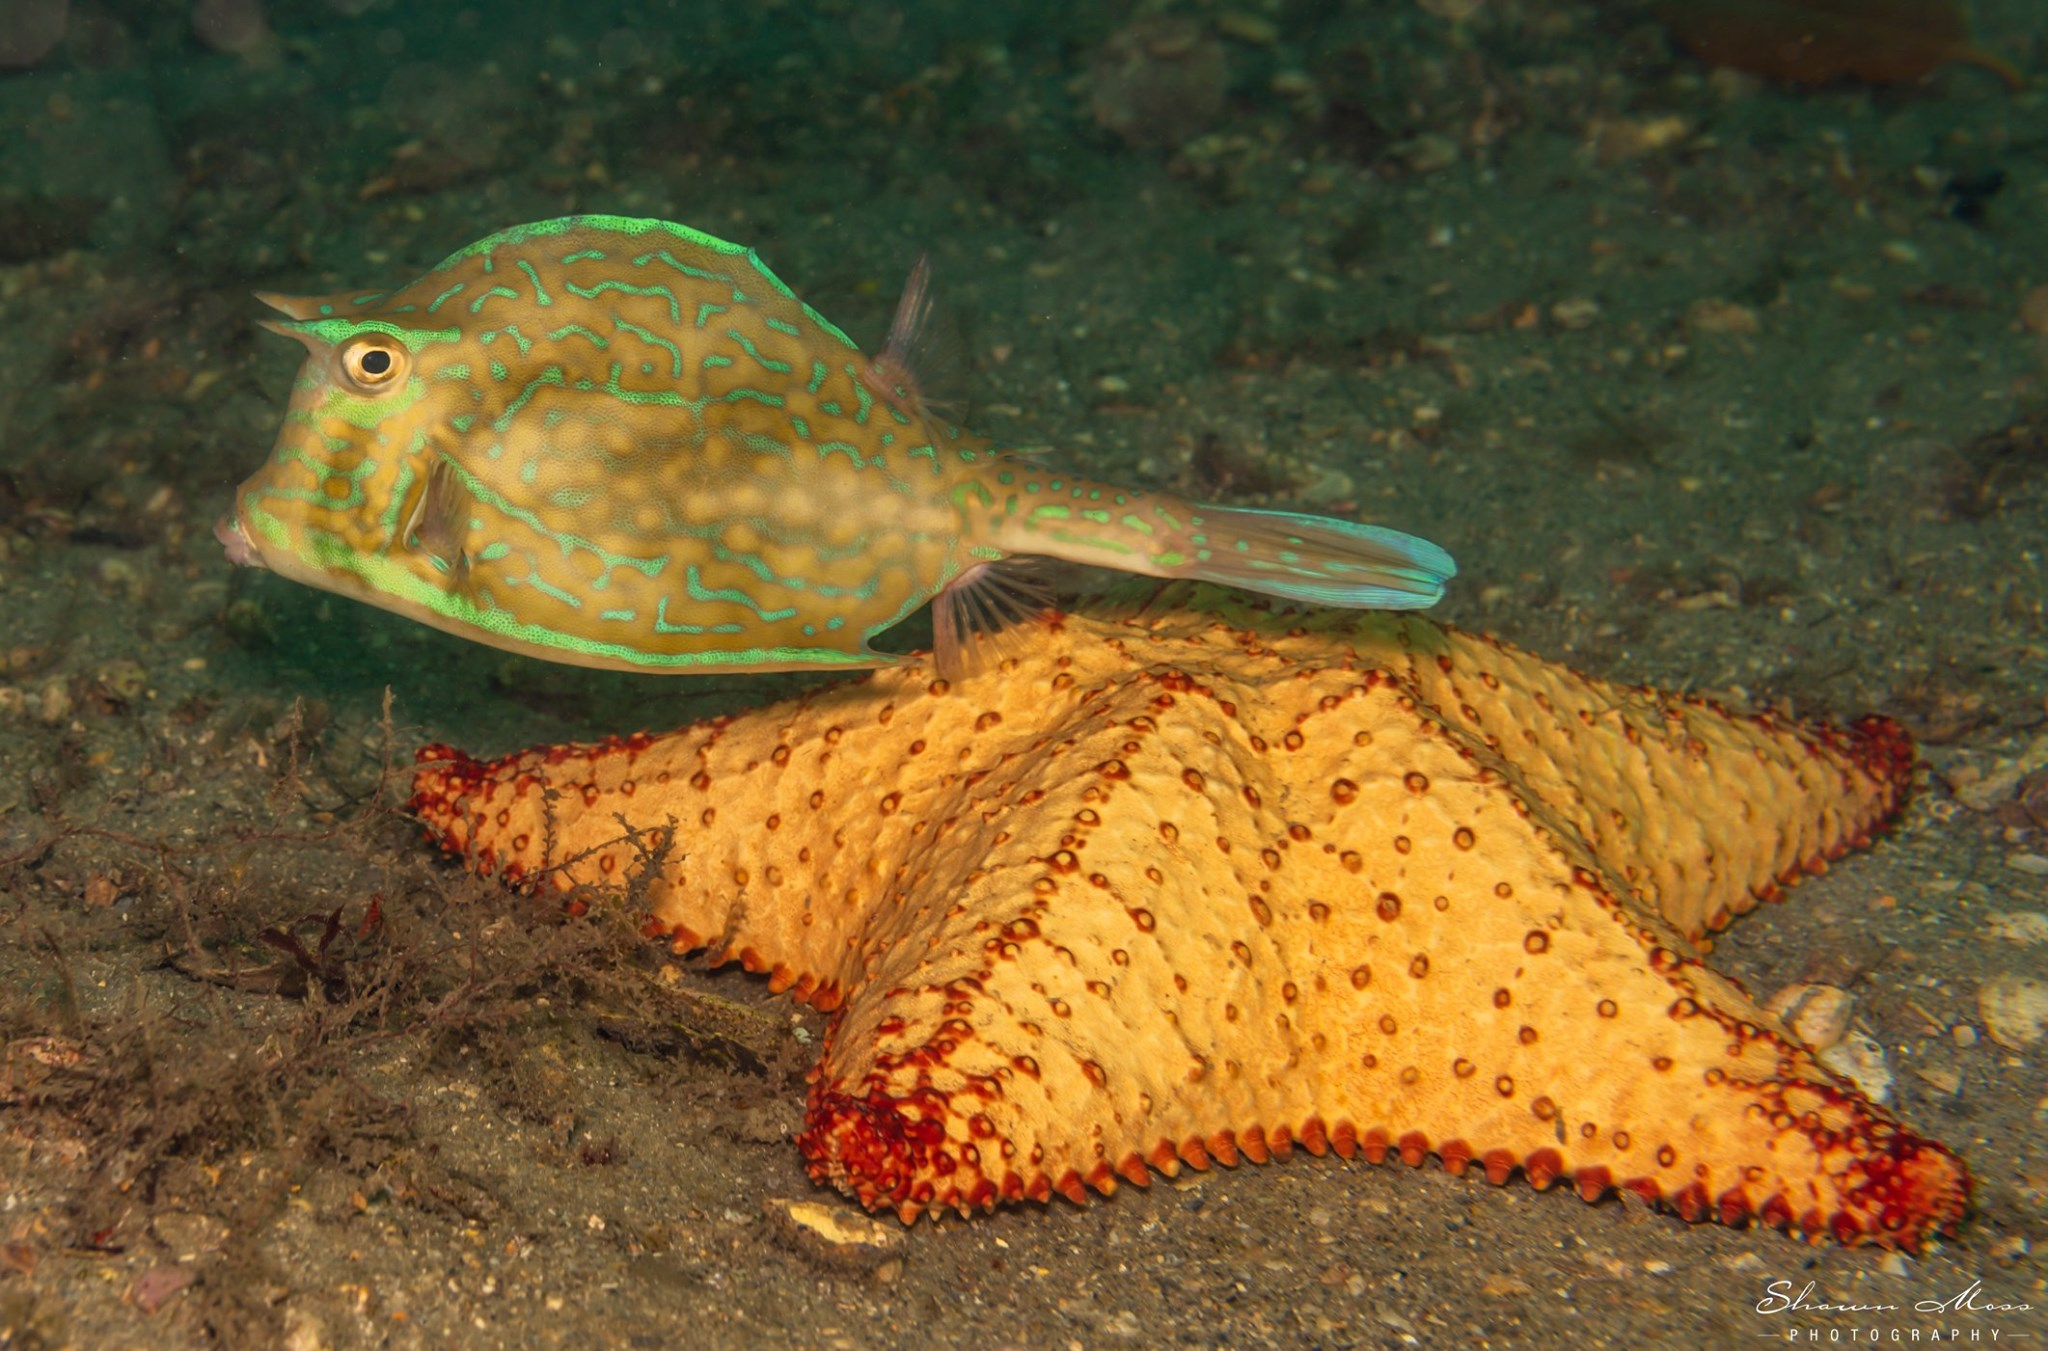 Neon colored fish by starfish on ocean floor